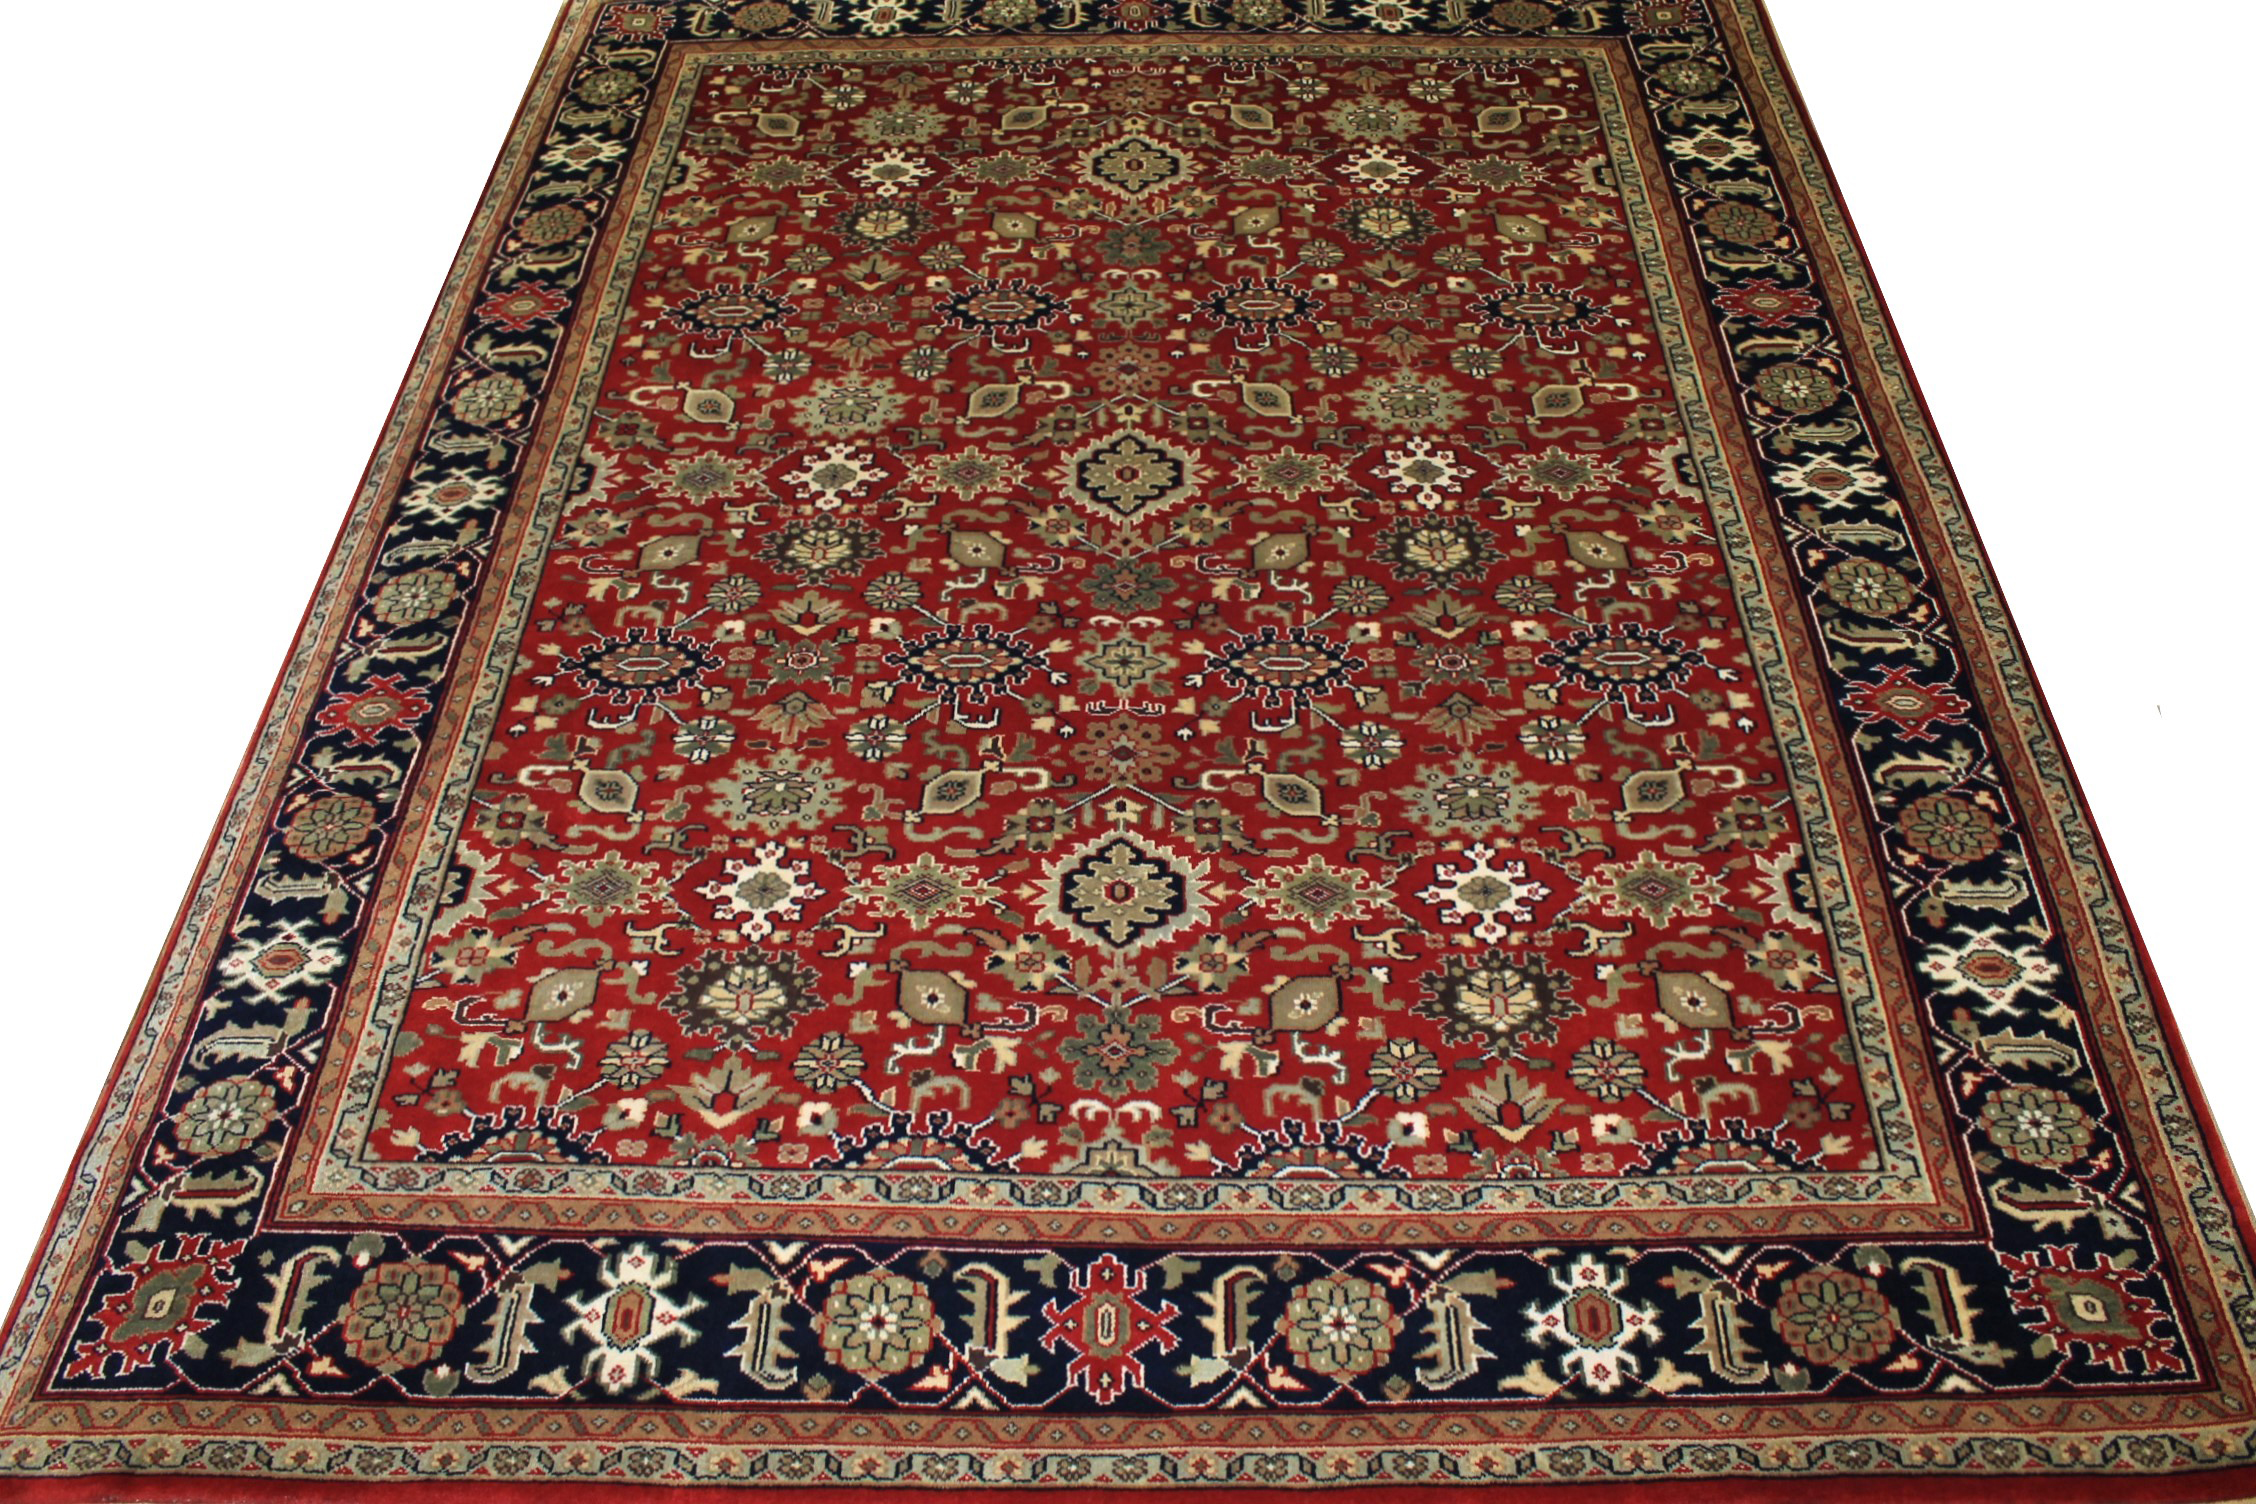 8x10 Traditional Hand Knotted Wool Area Rug - MR15308